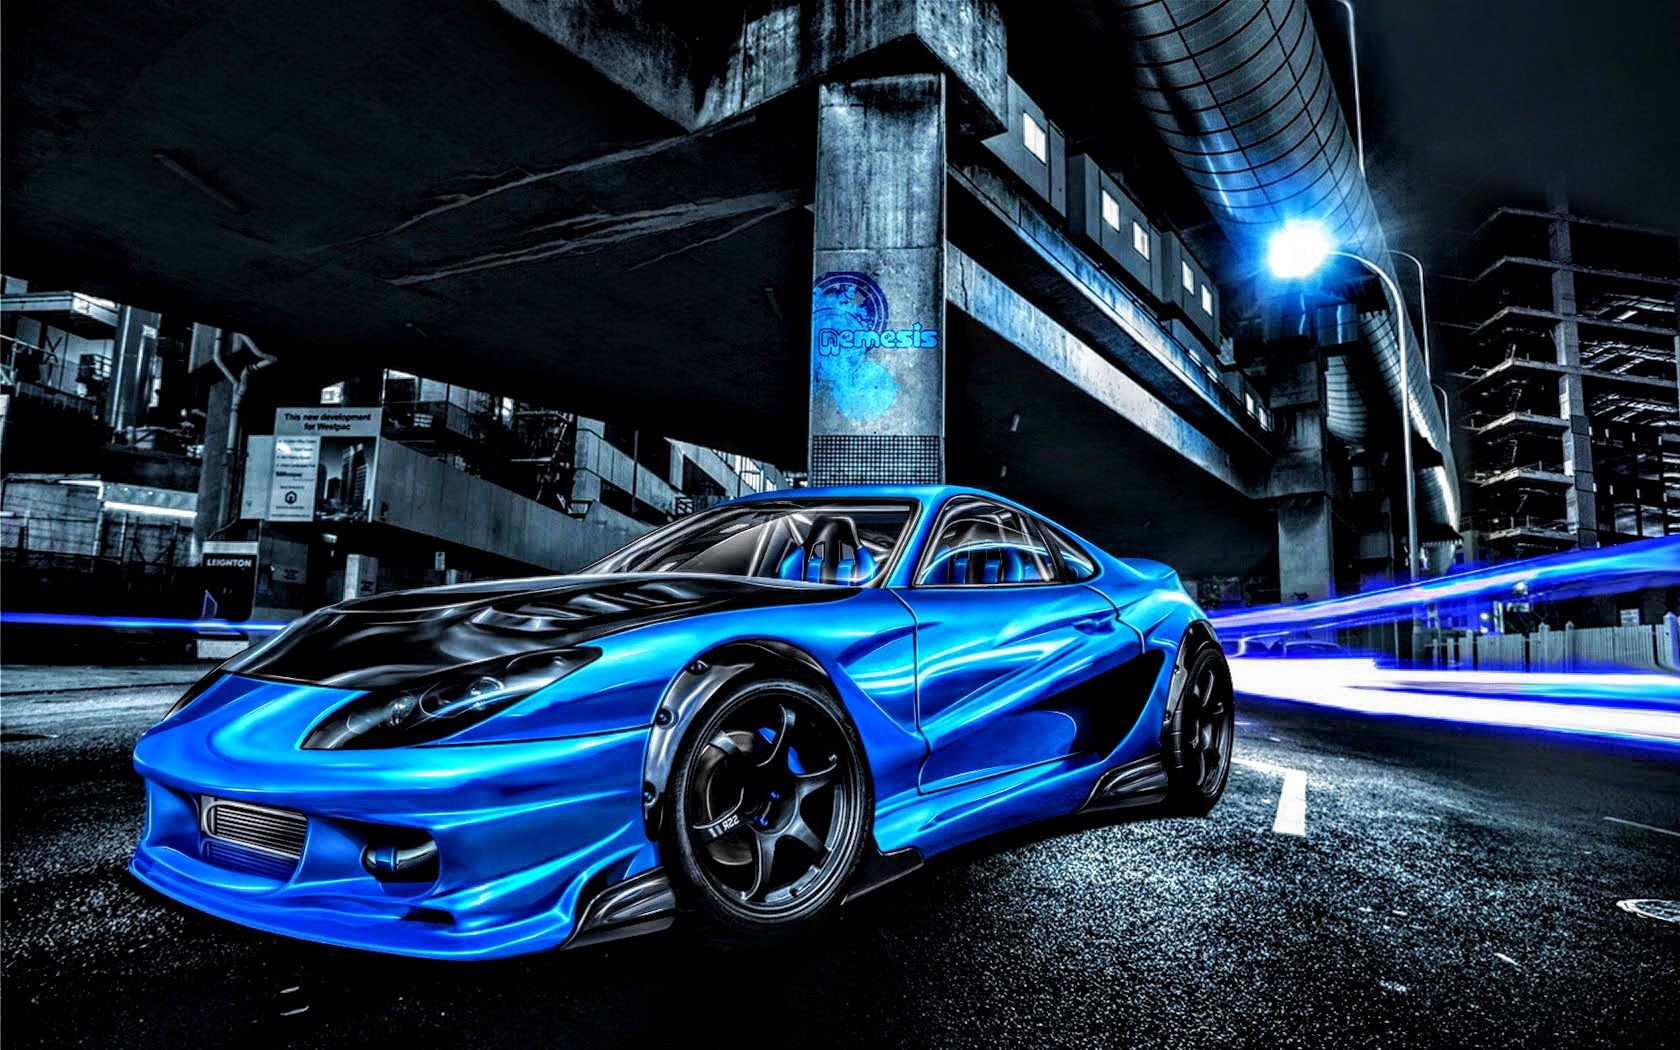 Need For Speed Underground Wallpaper By Rogue Rattlesnake On